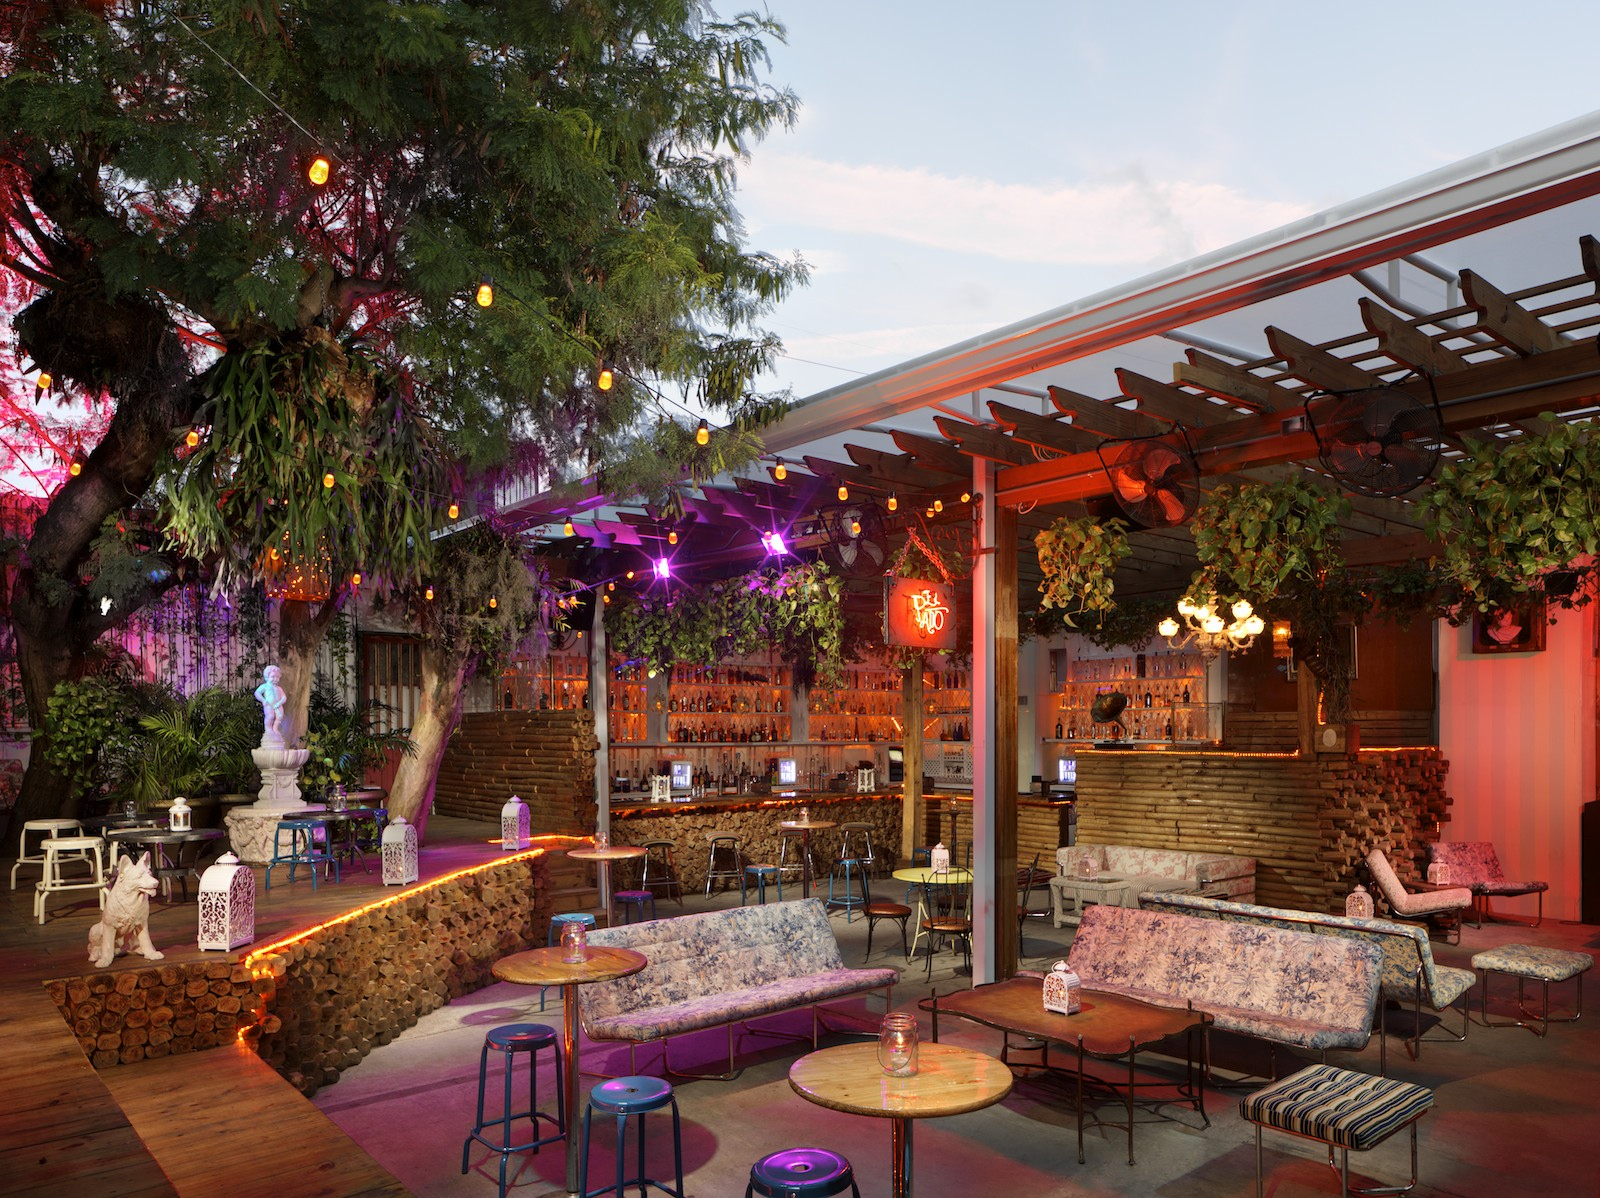 Backyard Porch Restaurant : El Patio Restaurant Miami  Antonio Cuellar Photography